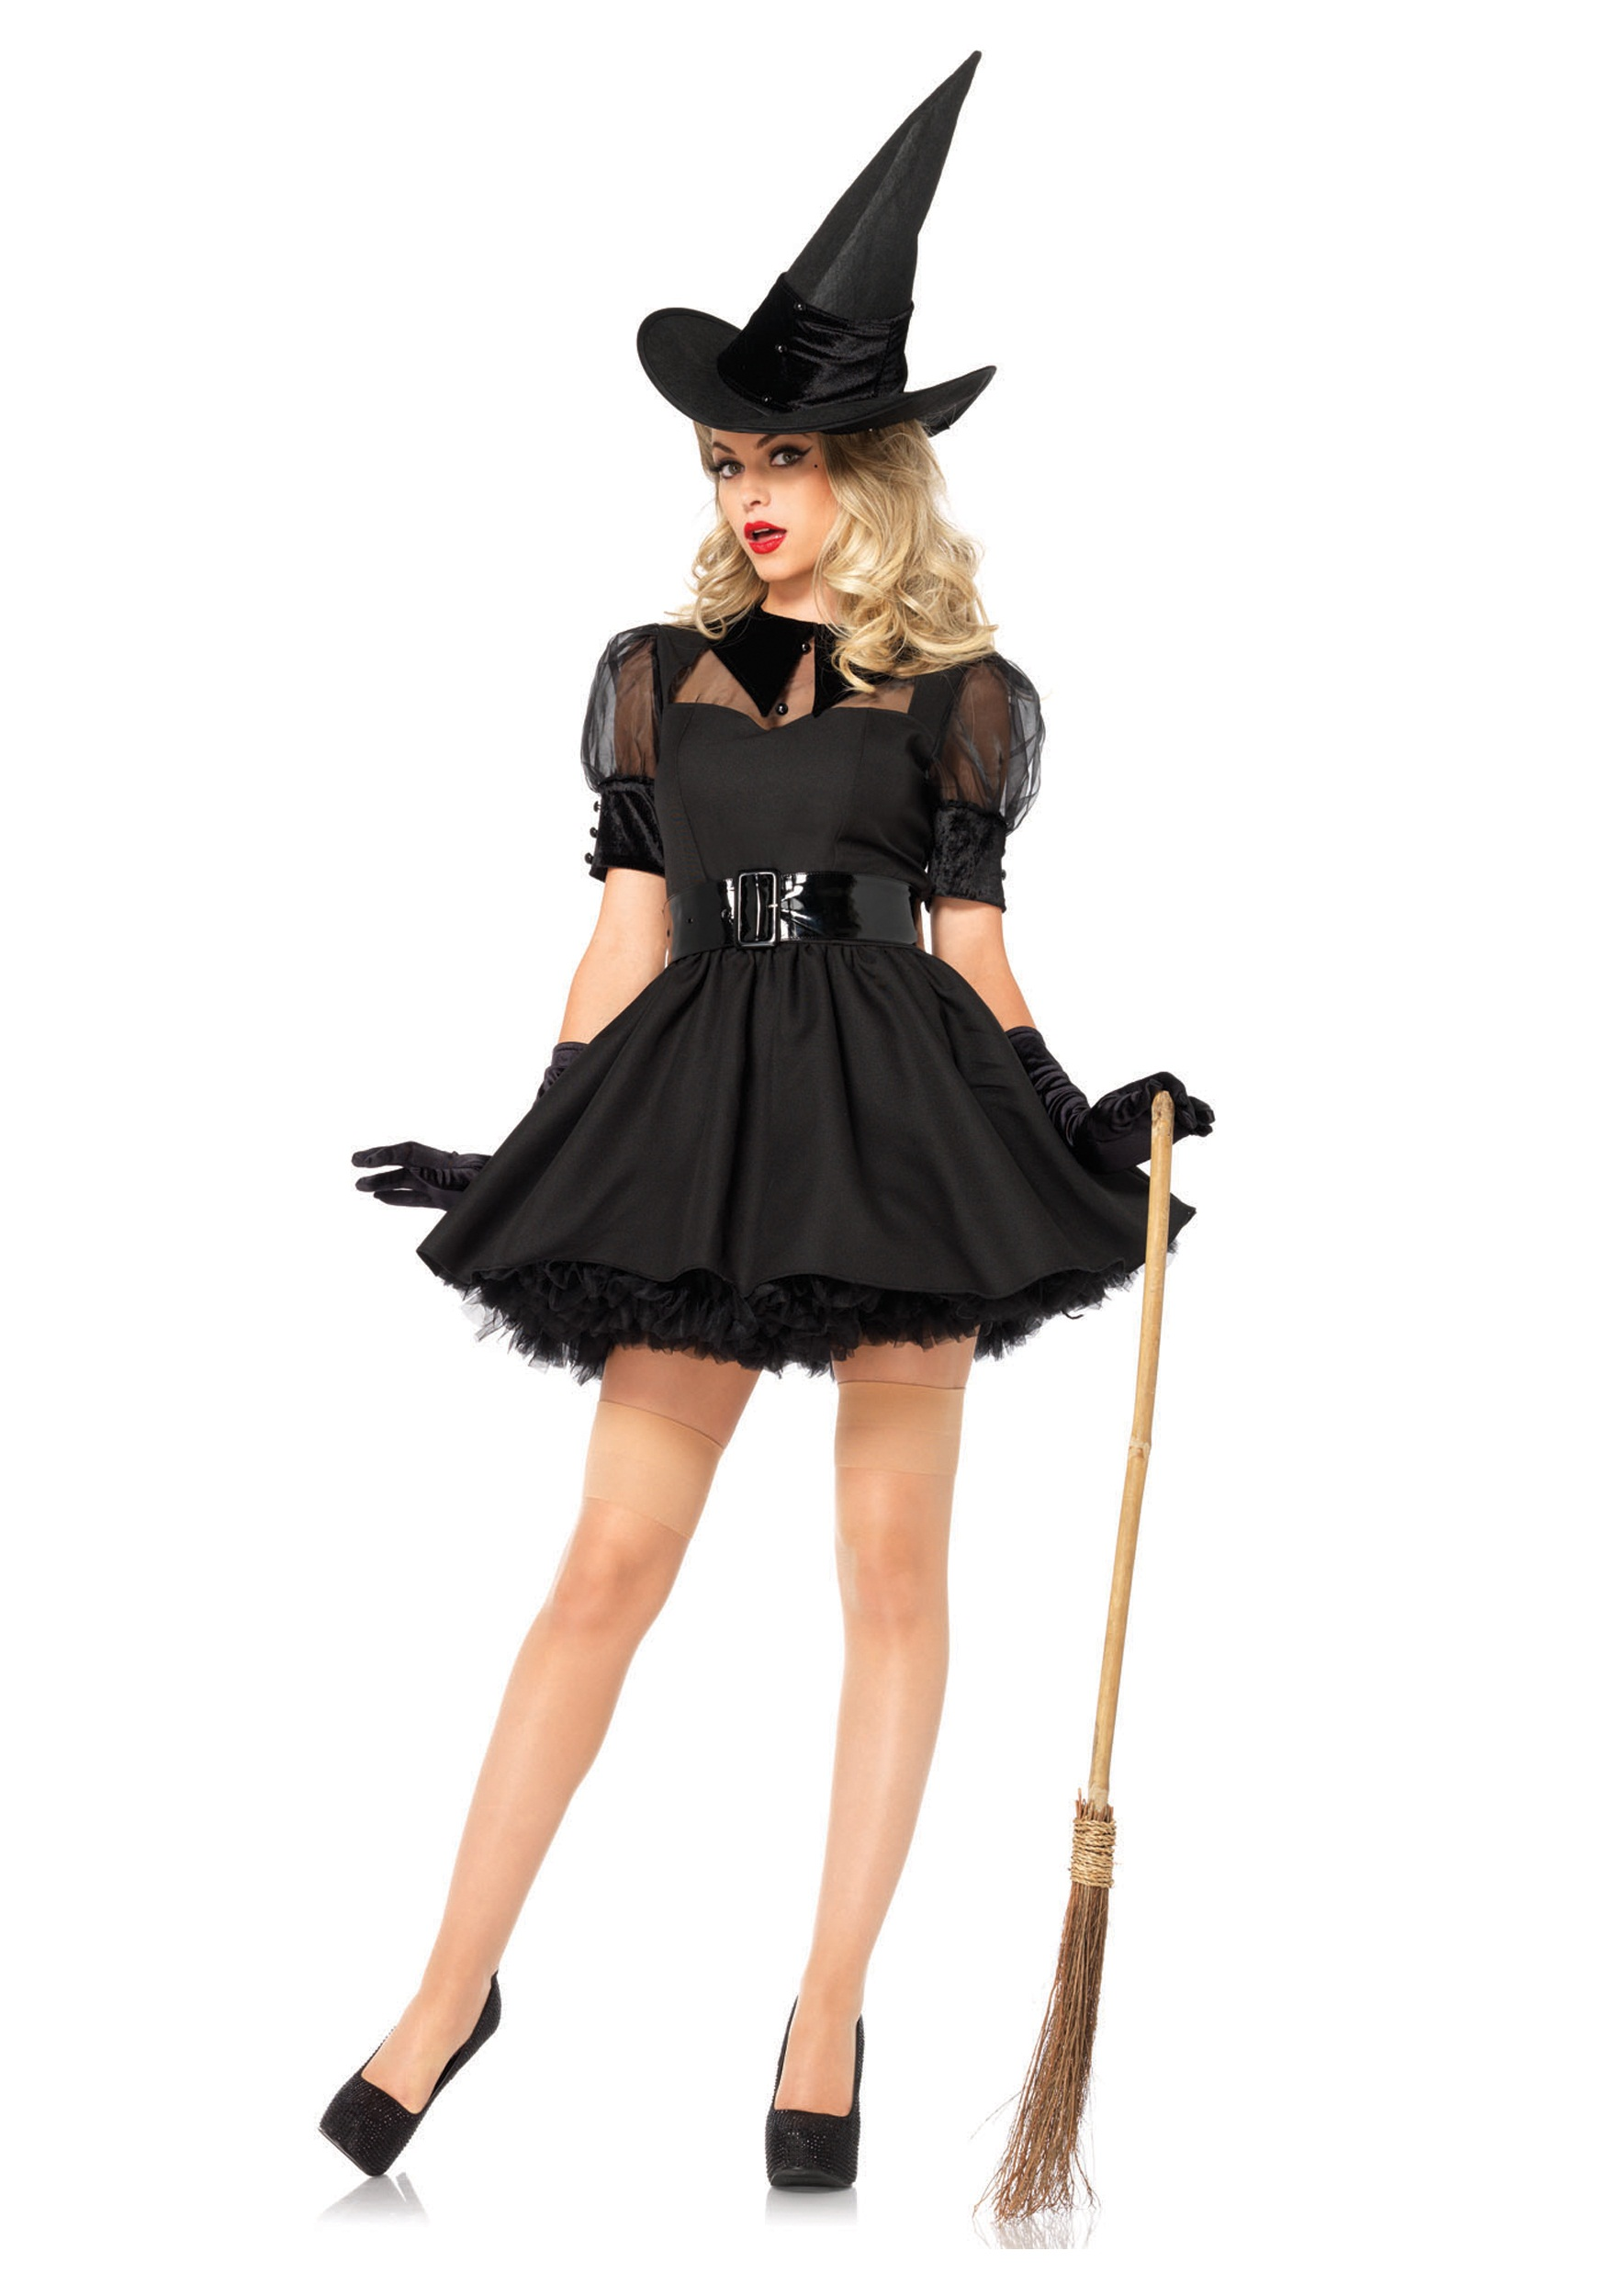 plus size dress up costumes australia league